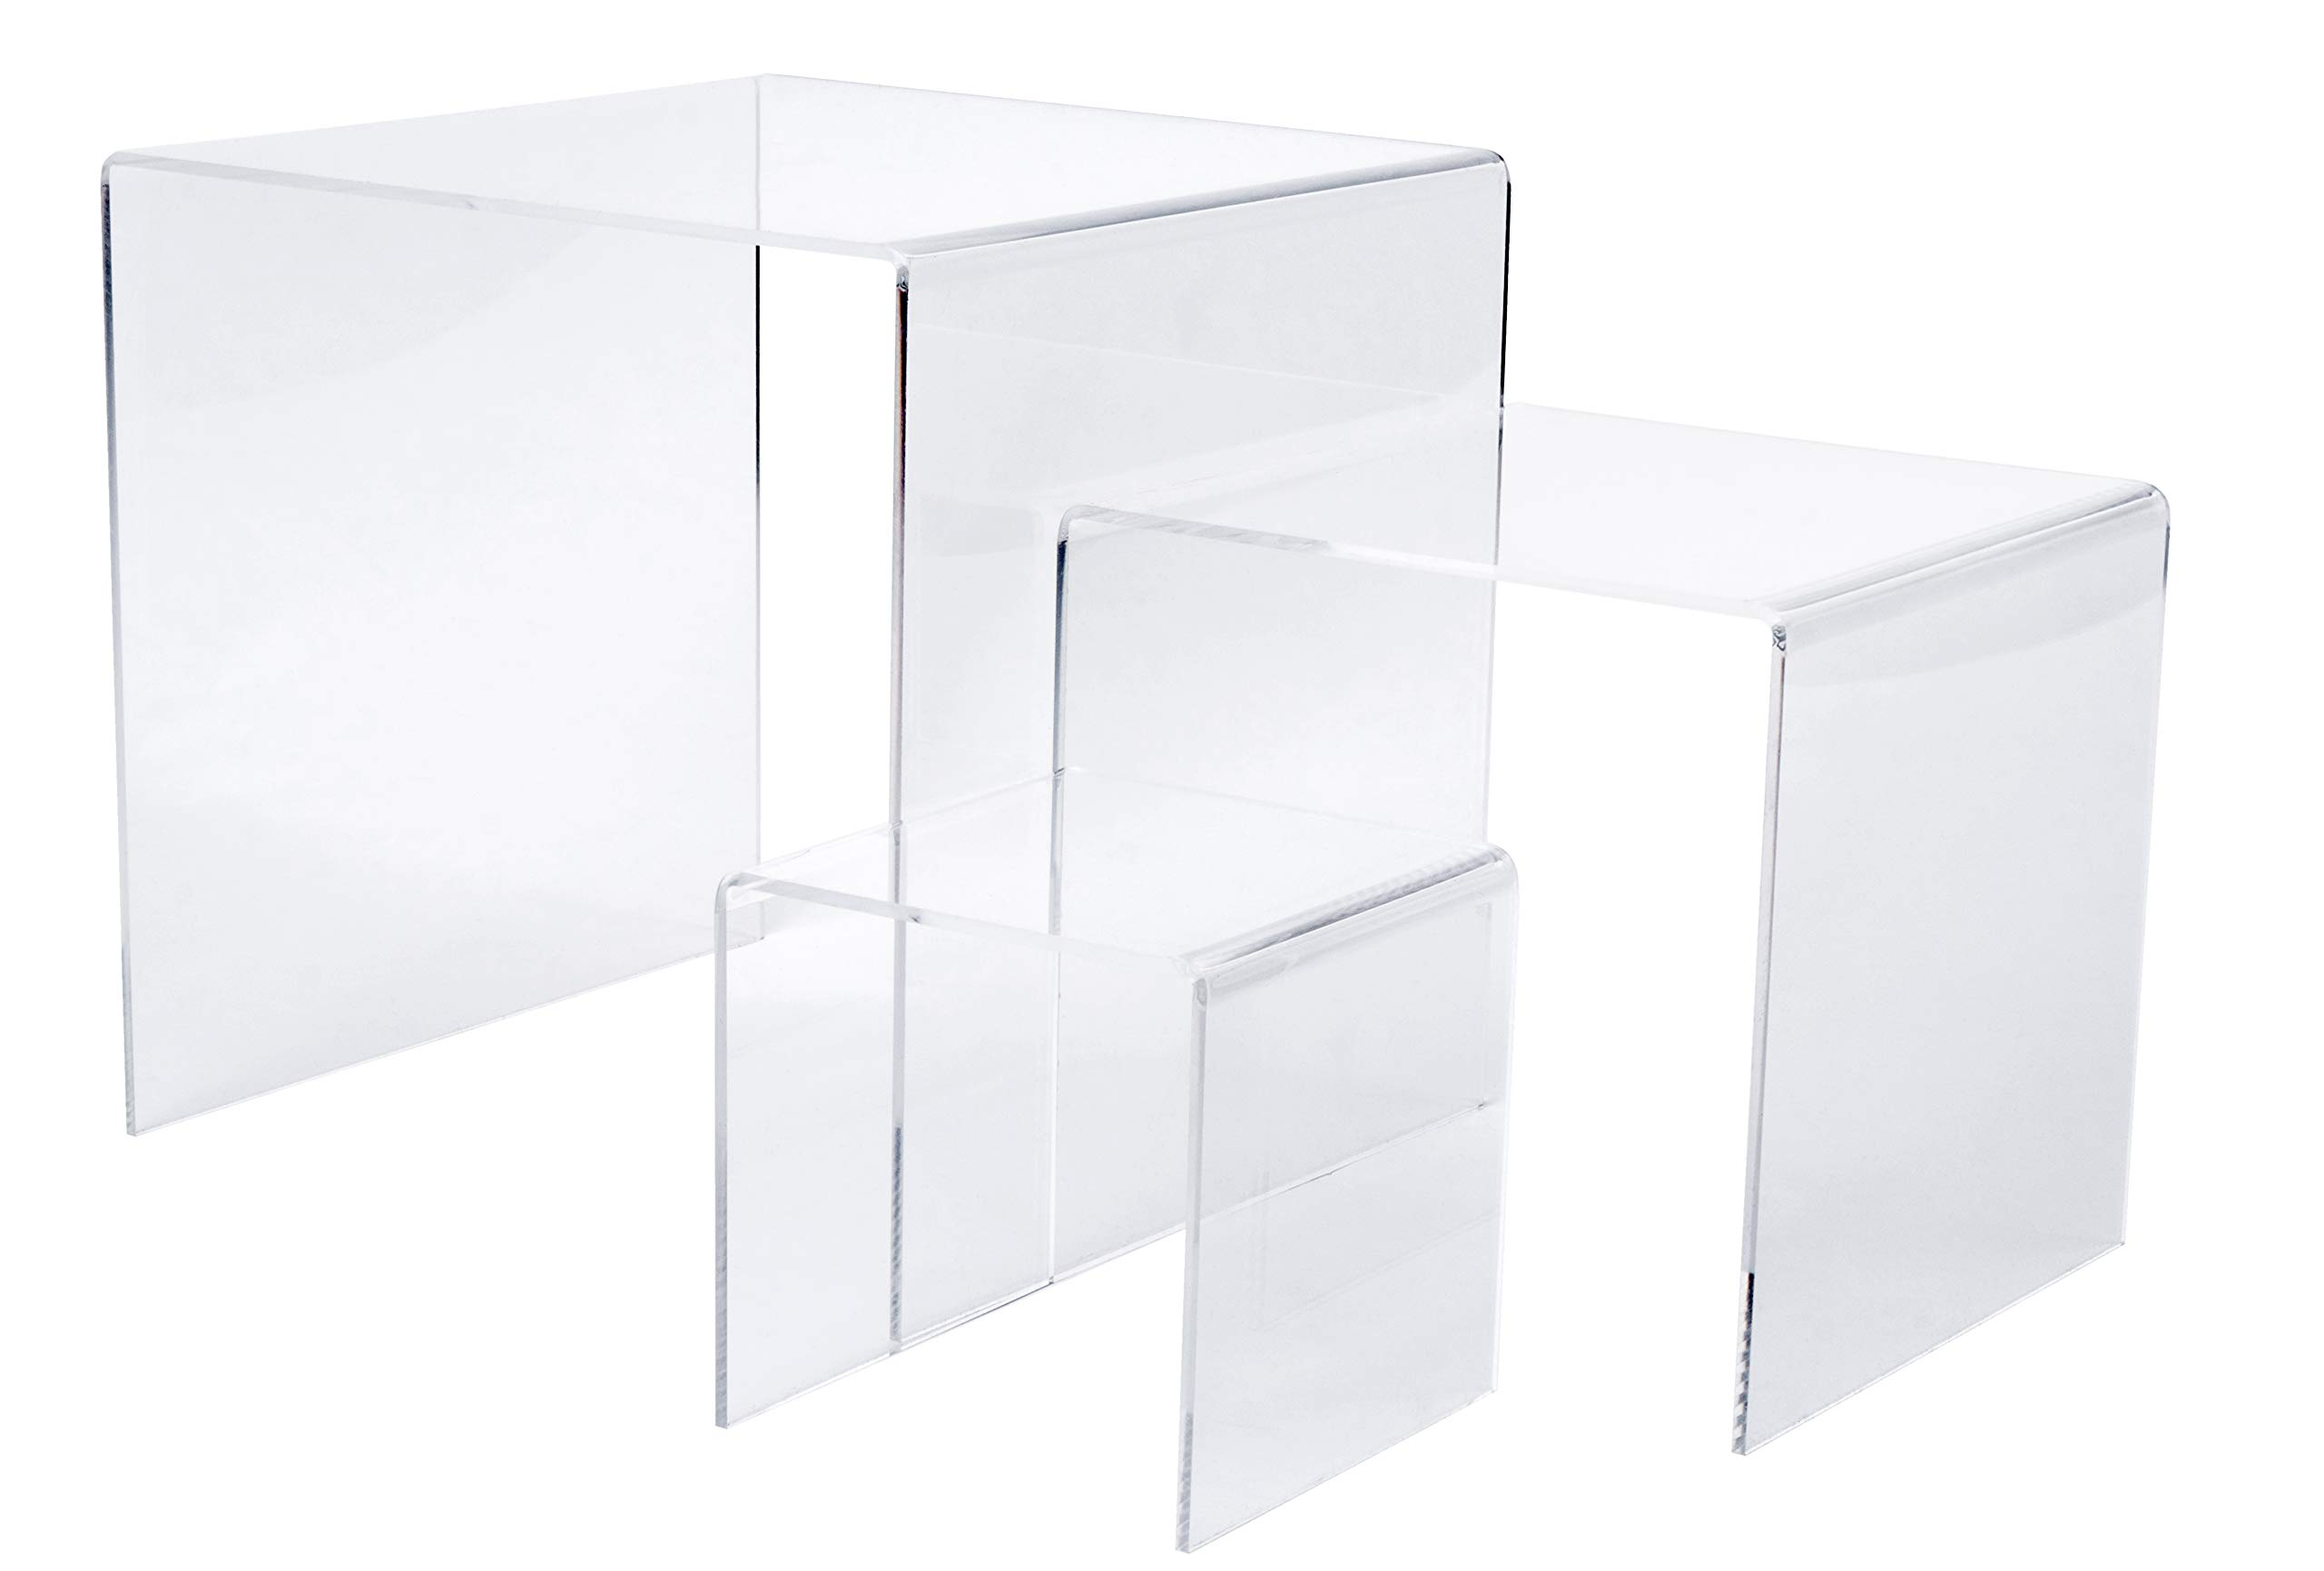 Set of 3 Premium Quality Clear Acrylic Display Stand Risers, 1/8 Inches Thick - 4, 6, 8 Inches by Red Co.